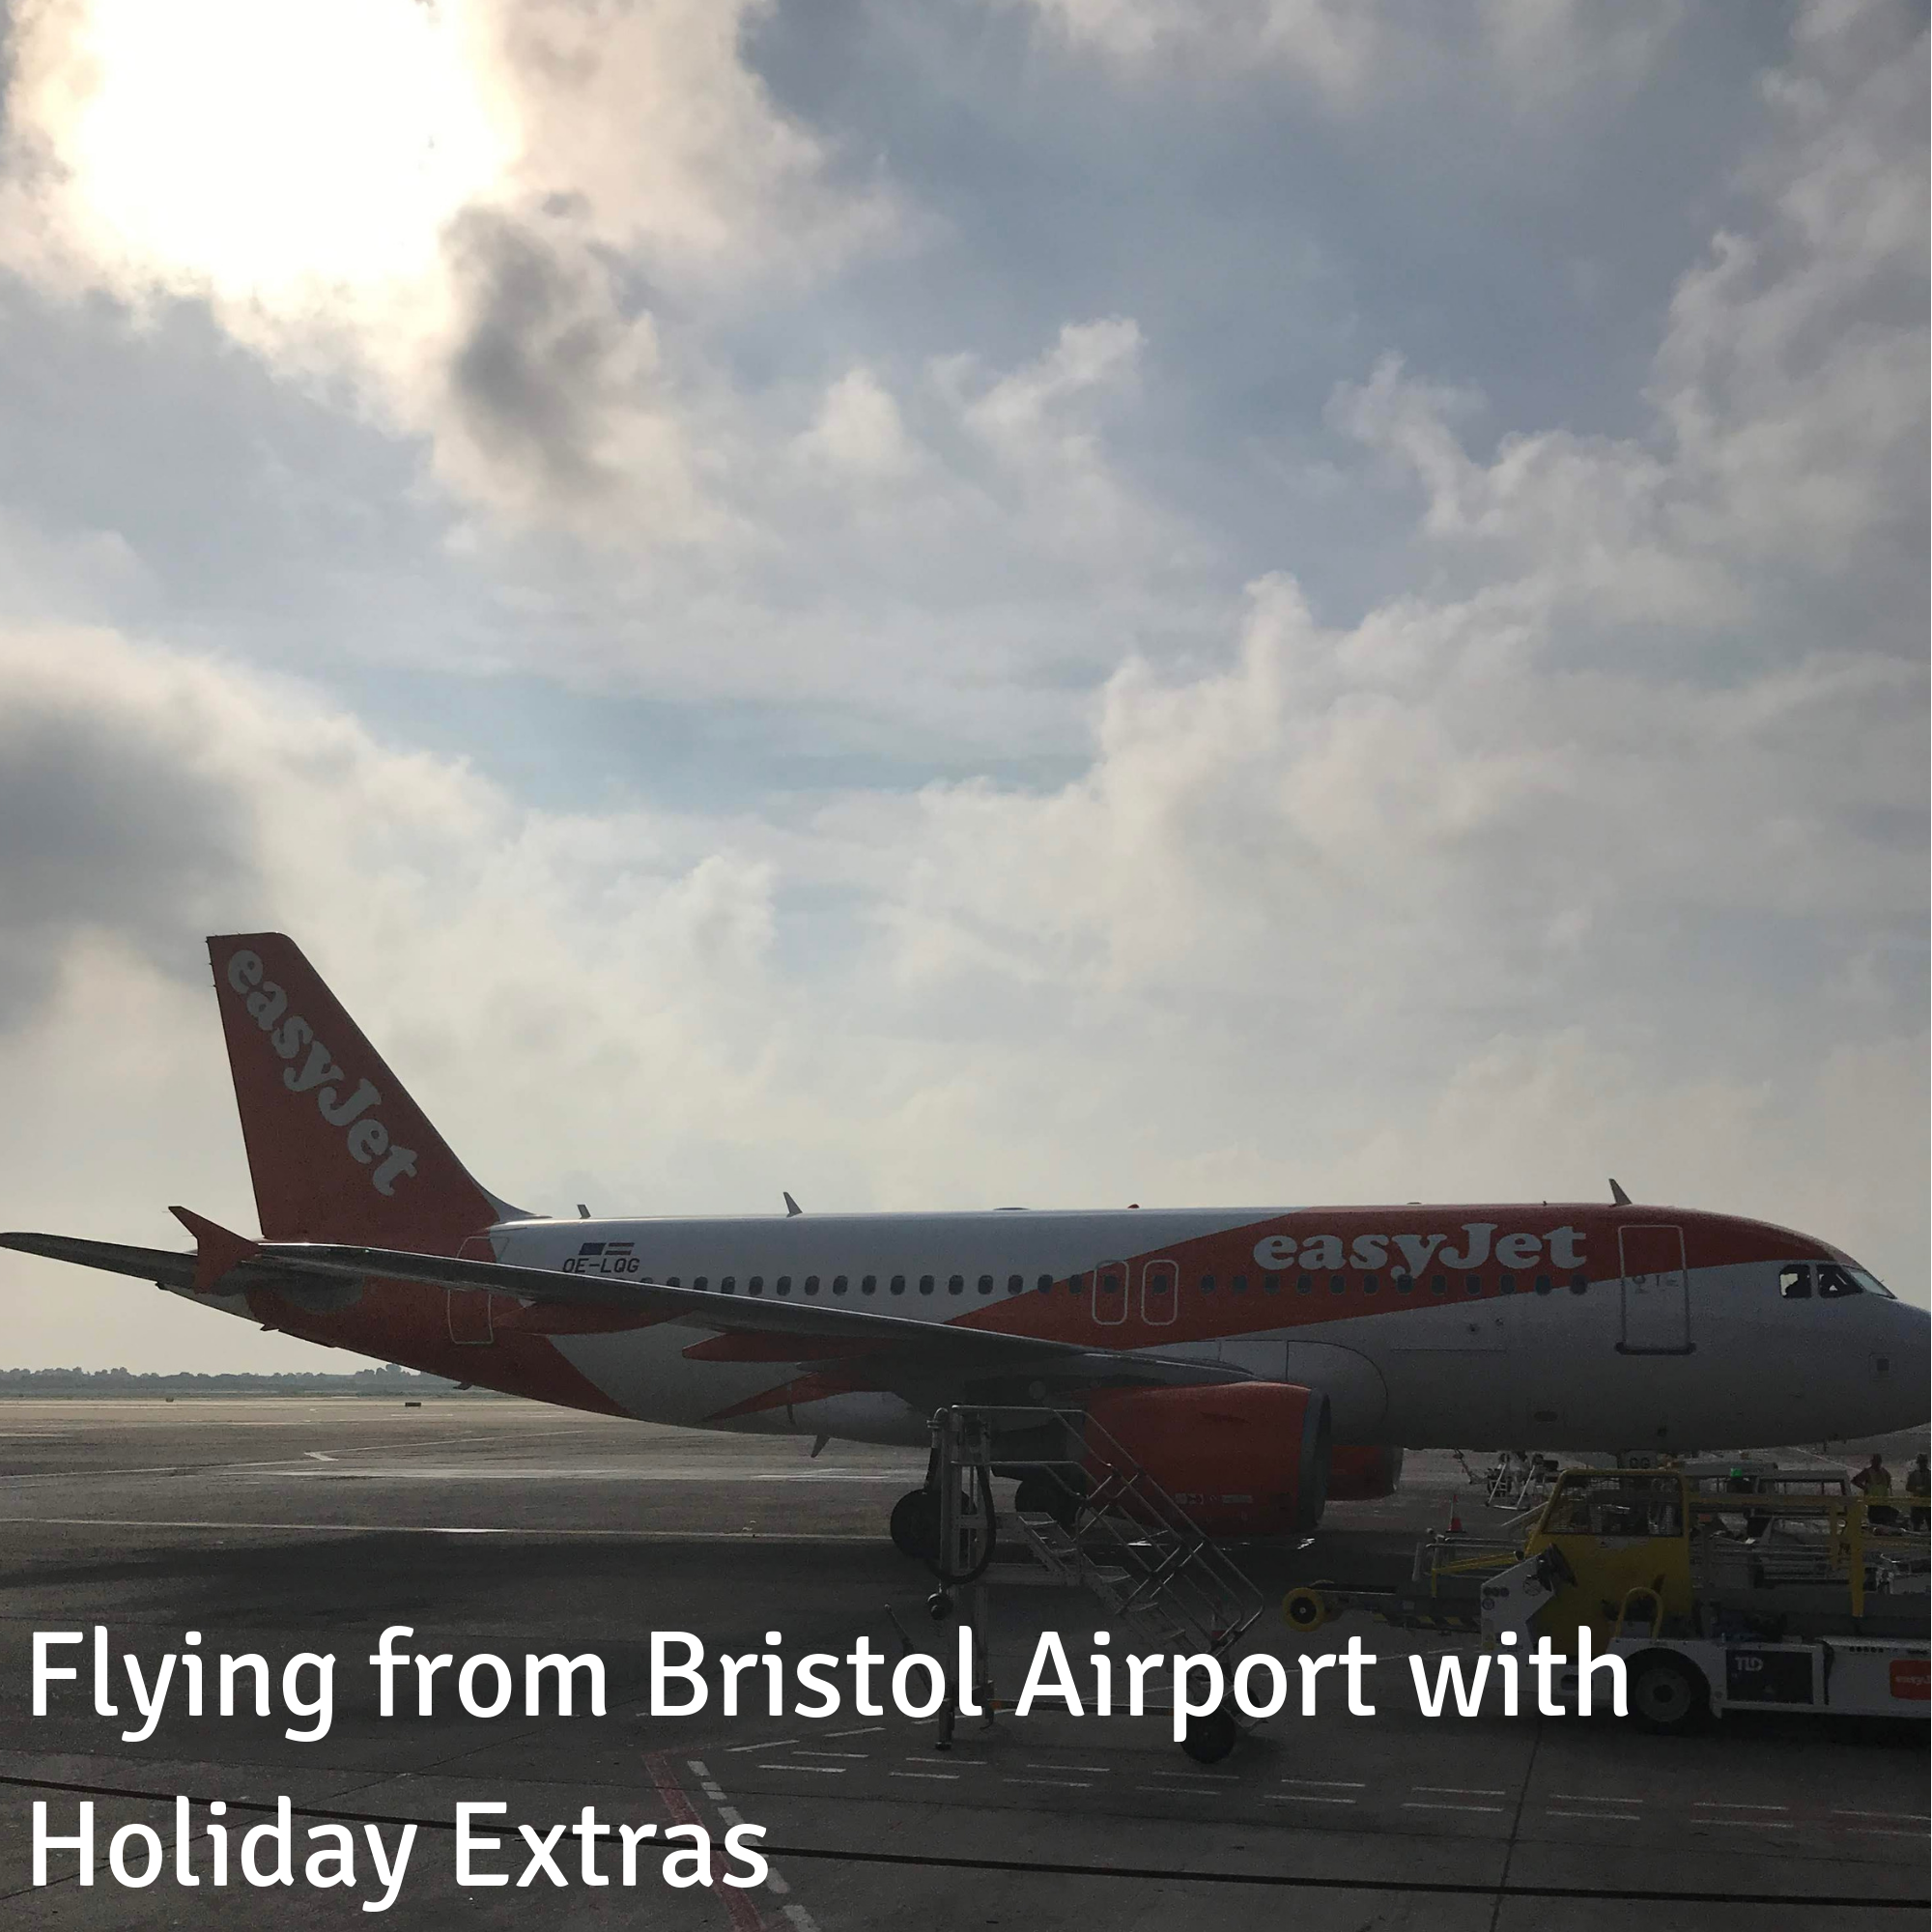 Flying from Bristol Airport with Holiday Extras